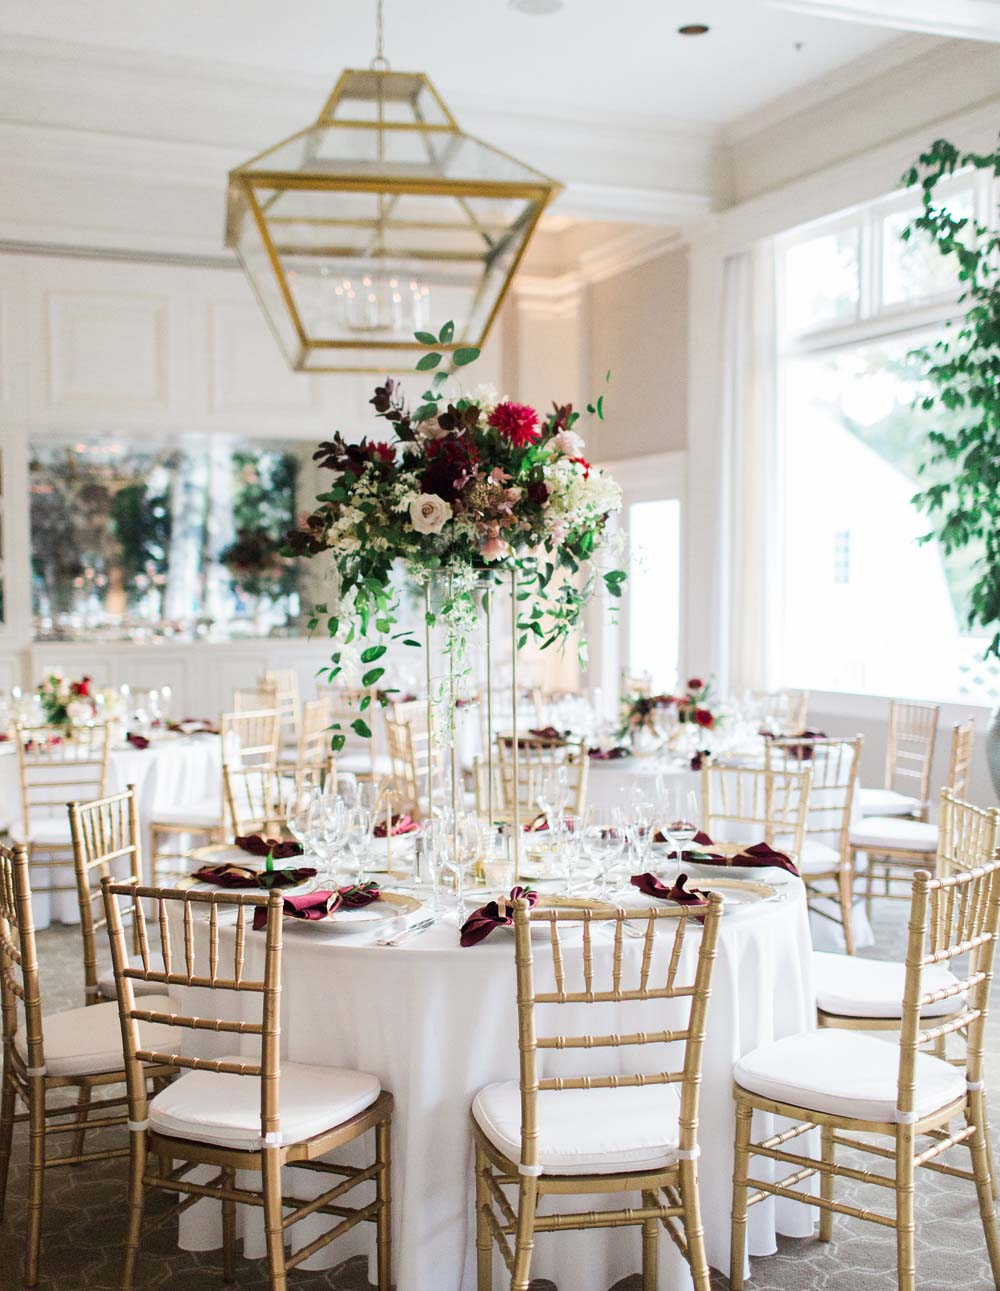 floral design at the Waverley Country Club wedding dining area